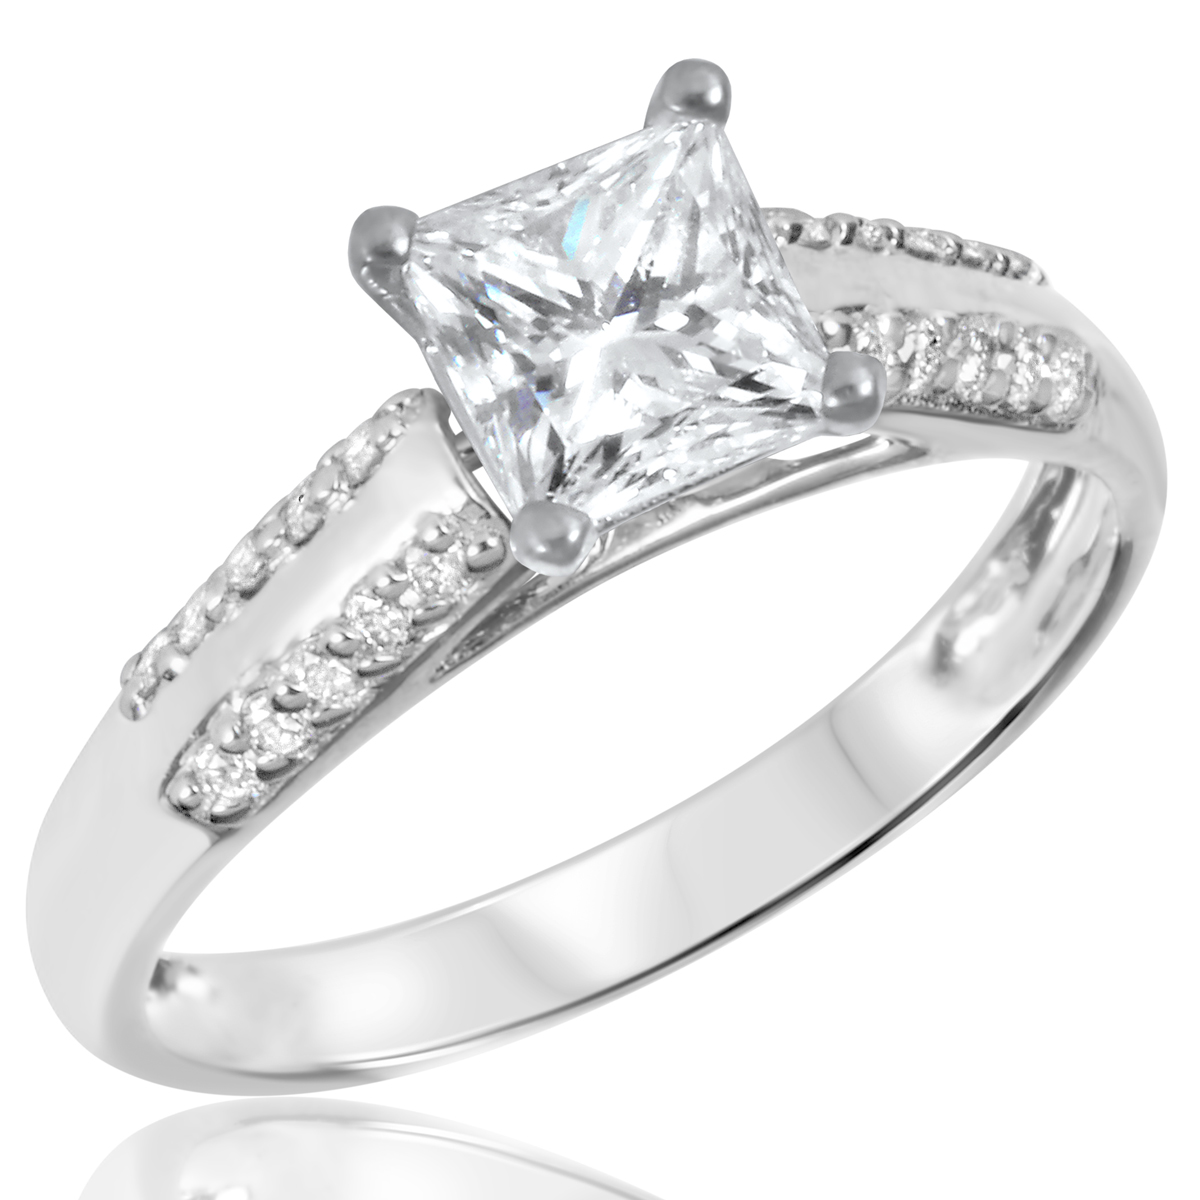 1 1/5 CT. T.W. Diamond Ladies Engagement Ring 14K White Gold- Size 8